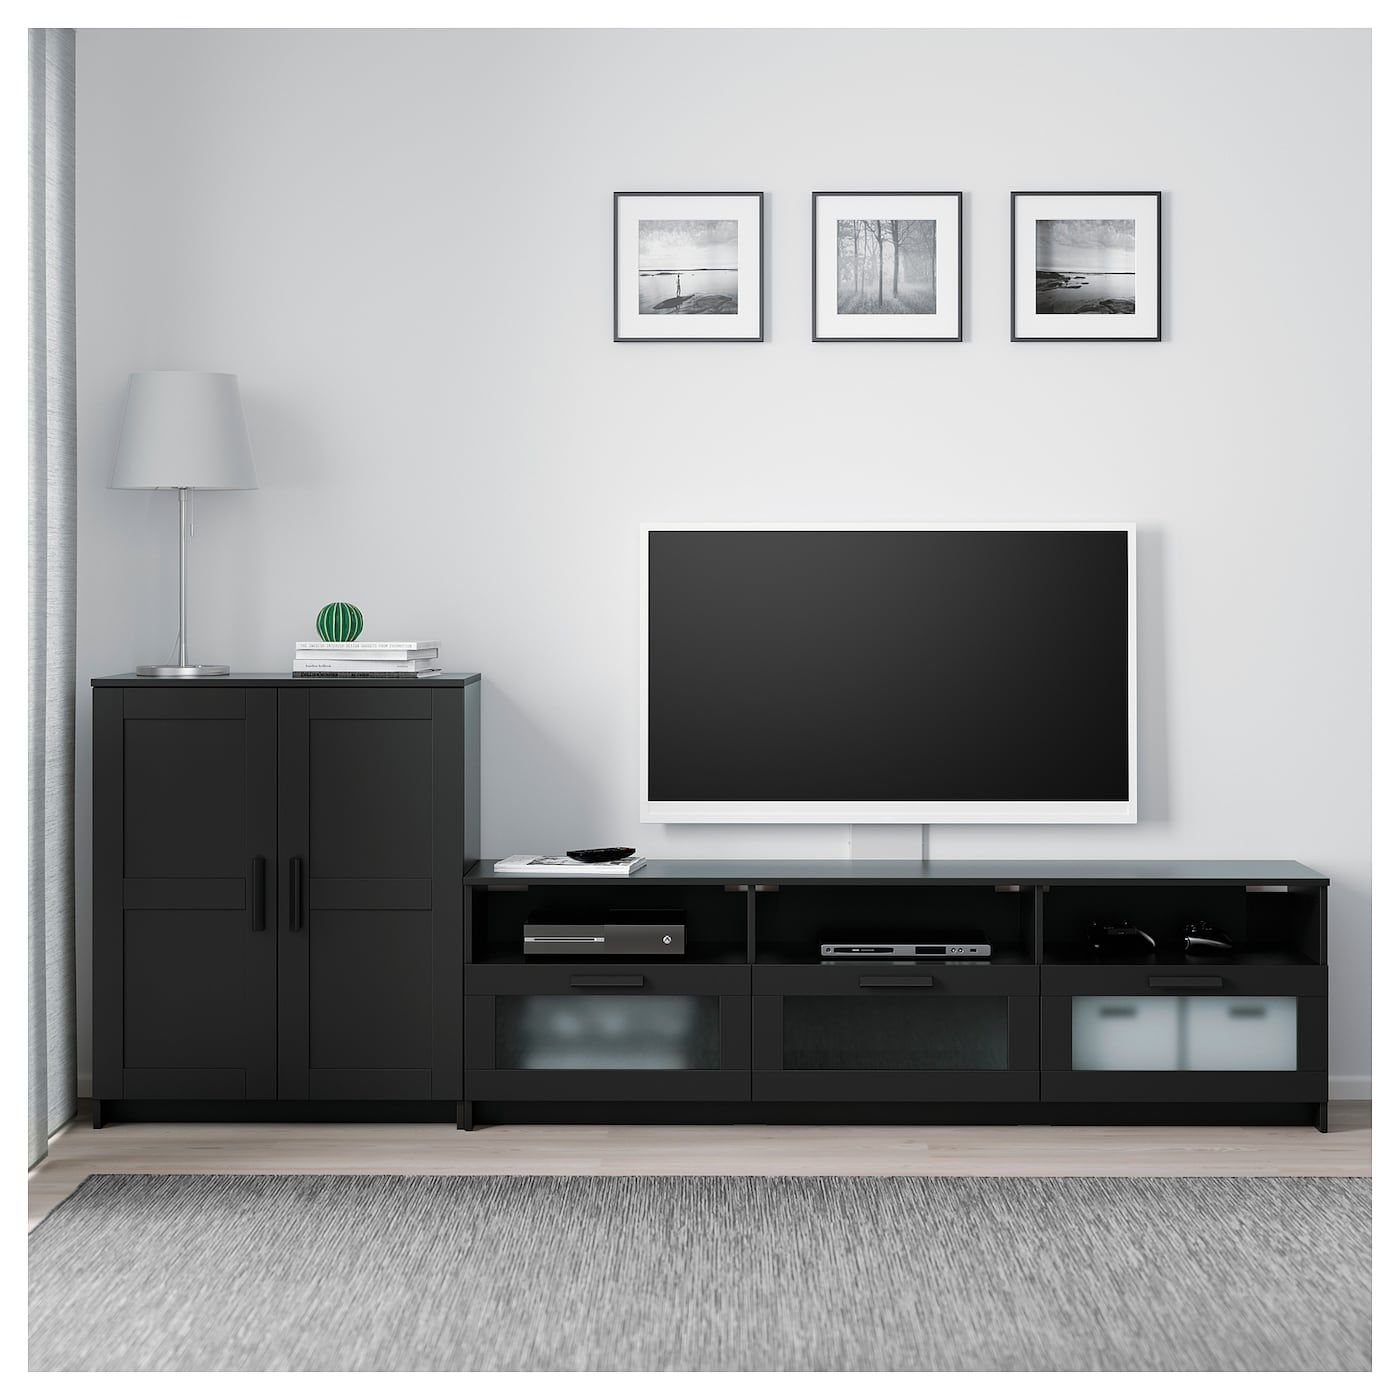 Brimnes Tv Storage Combination Black 101 5 8x16 1 8x37 3 8